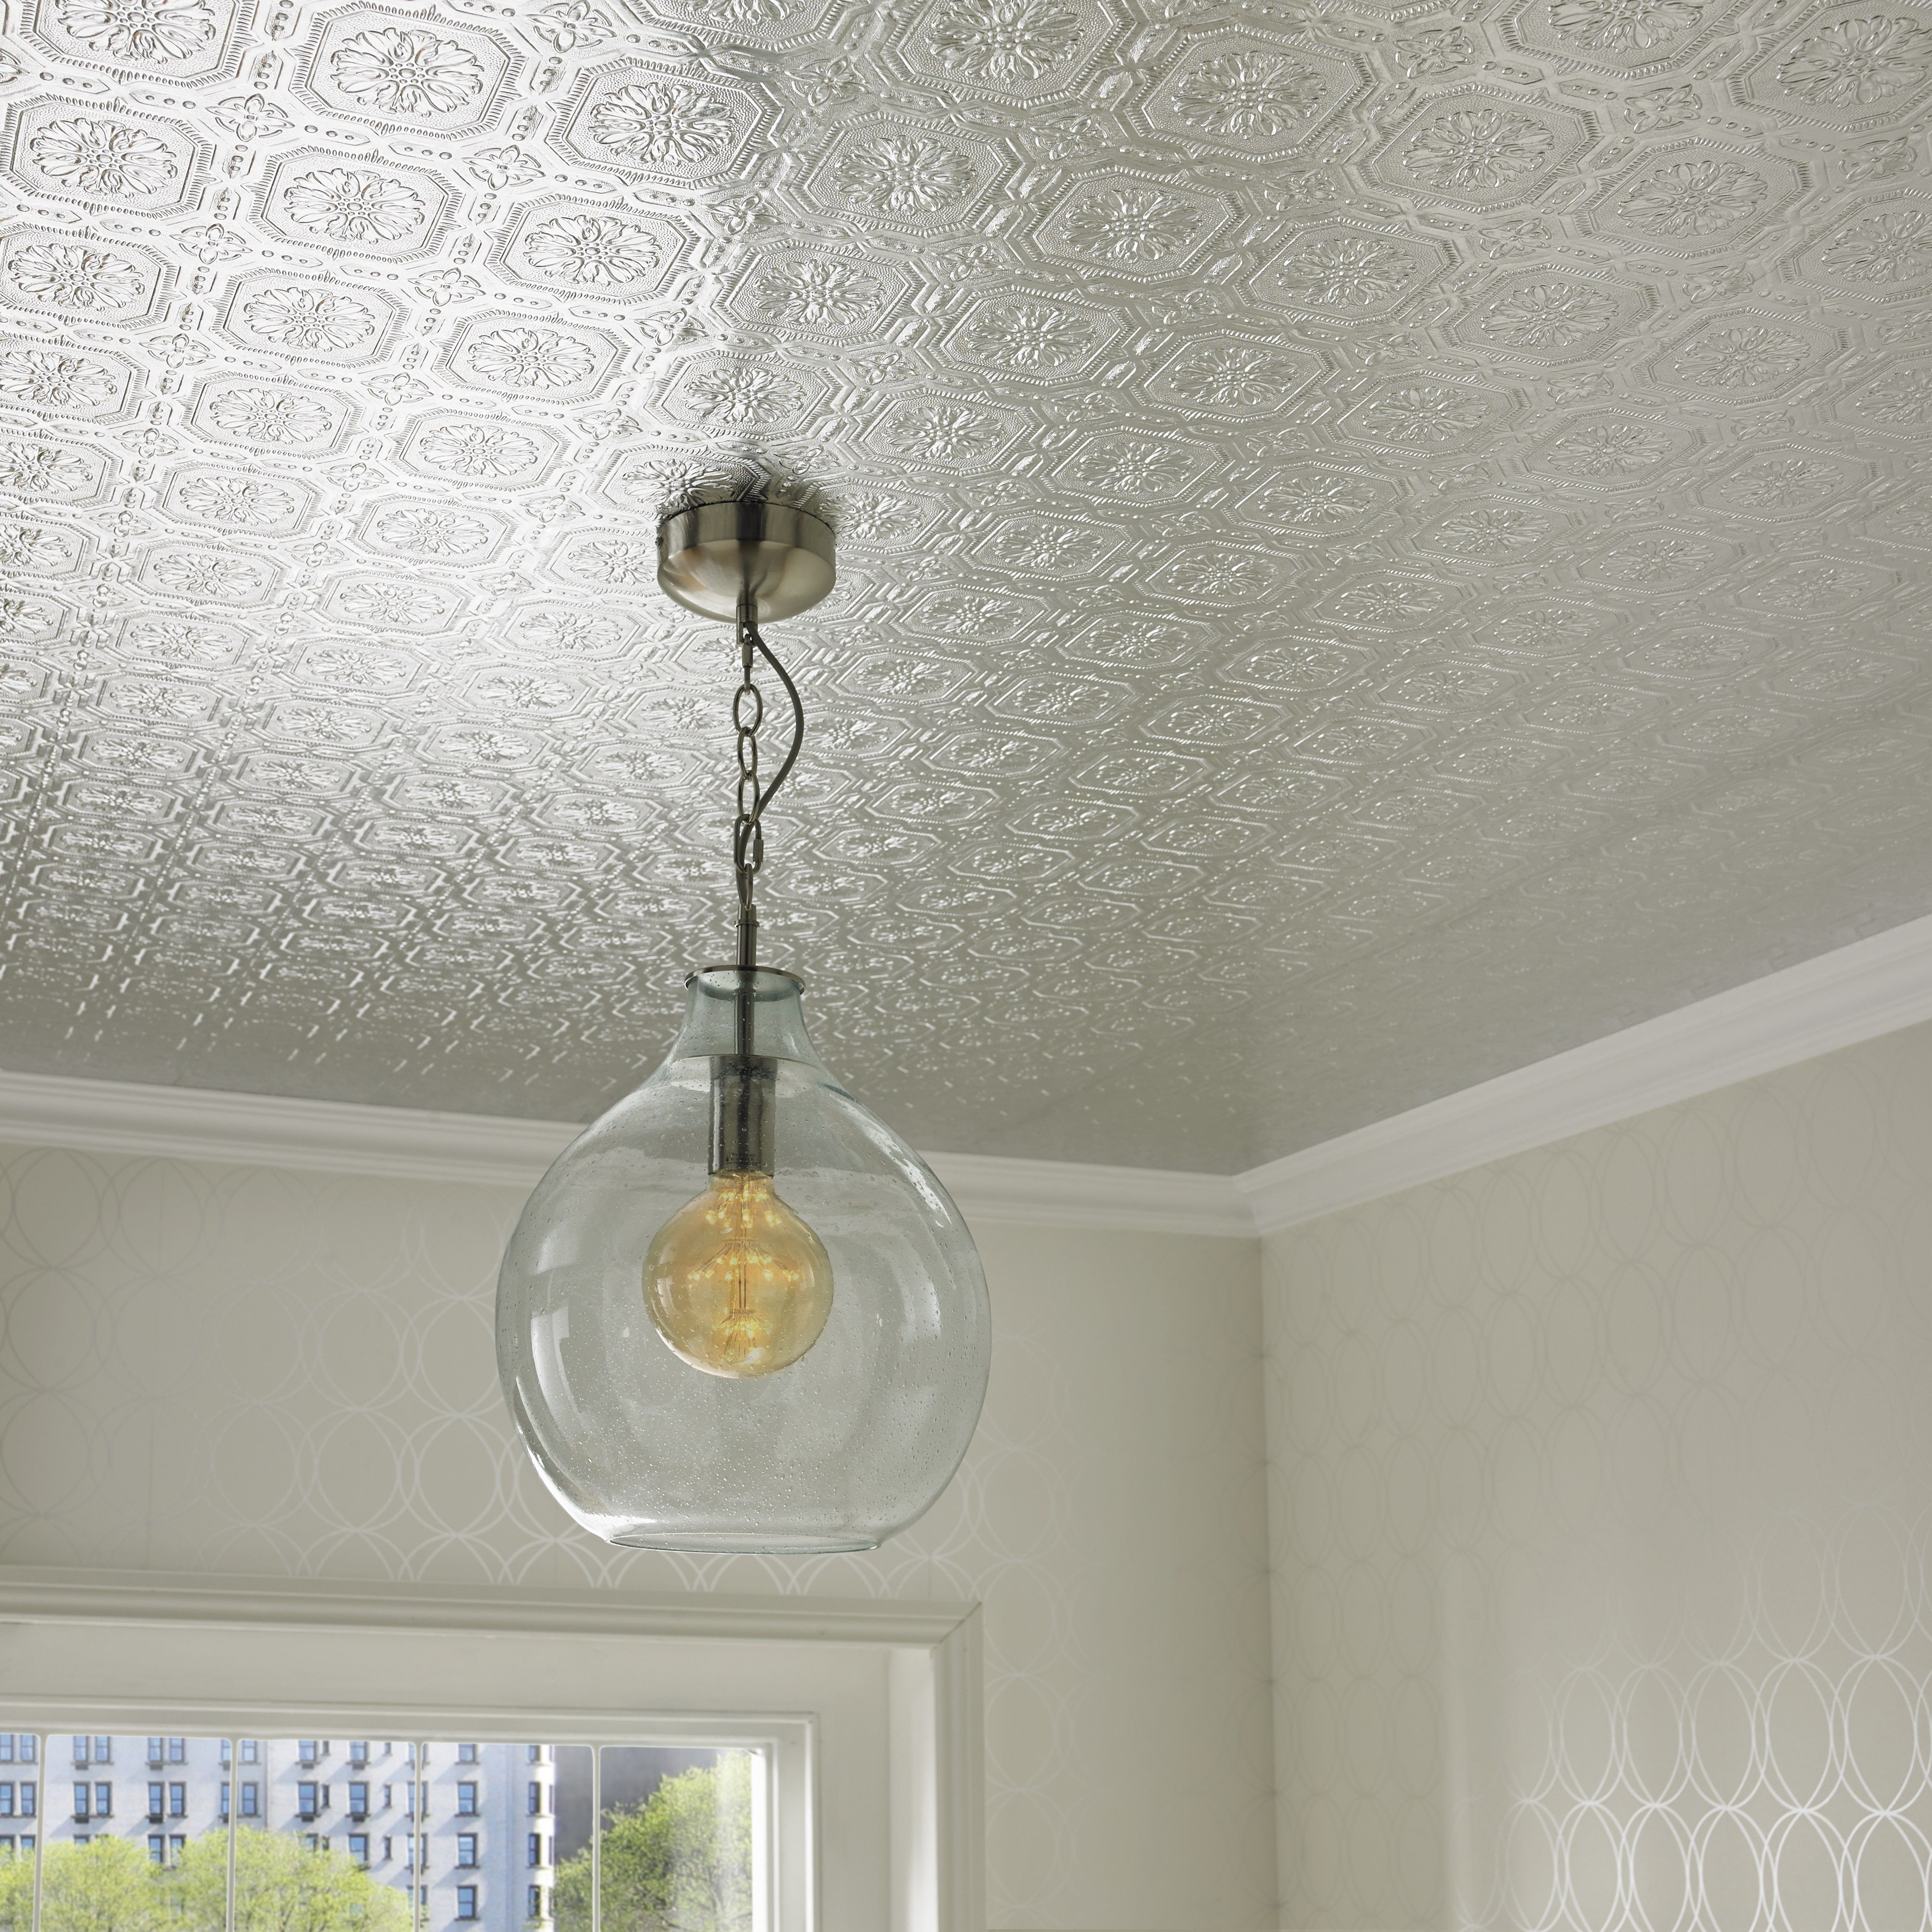 The Fifth Wall Is Wallpapering The Ceiling A Trend Again